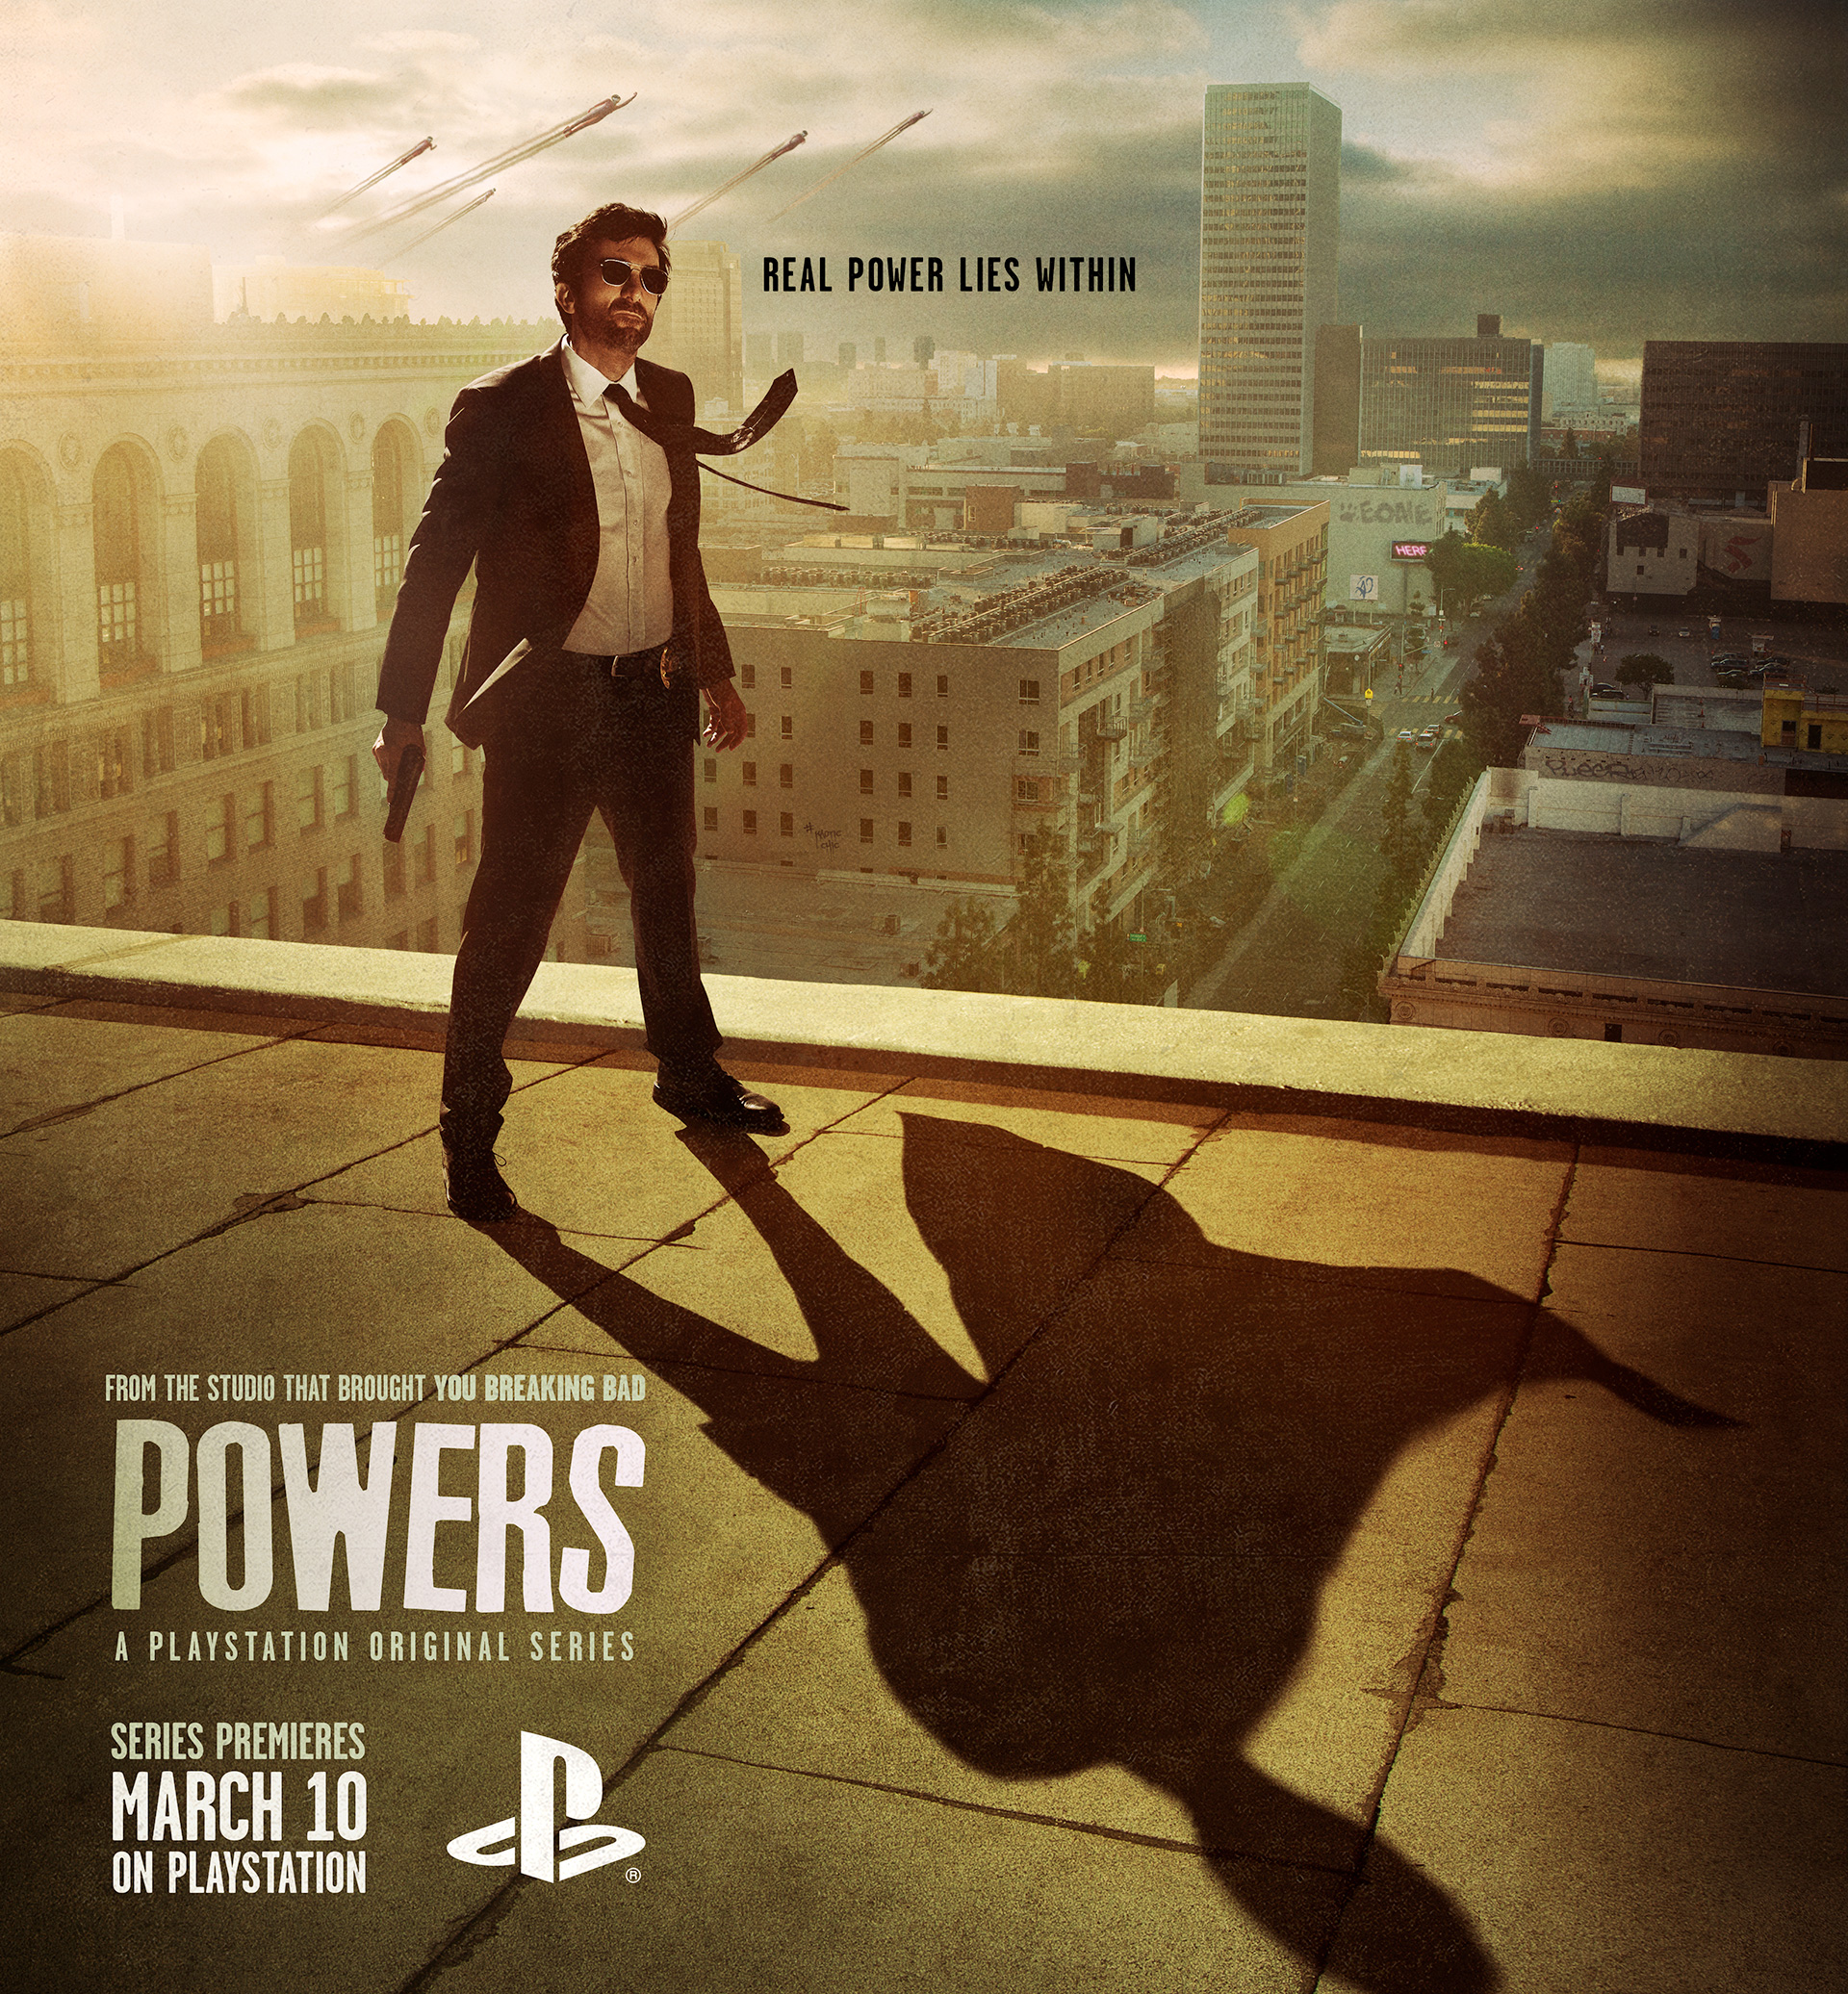 Powers, PlayStation's first original TV series, premieres this March